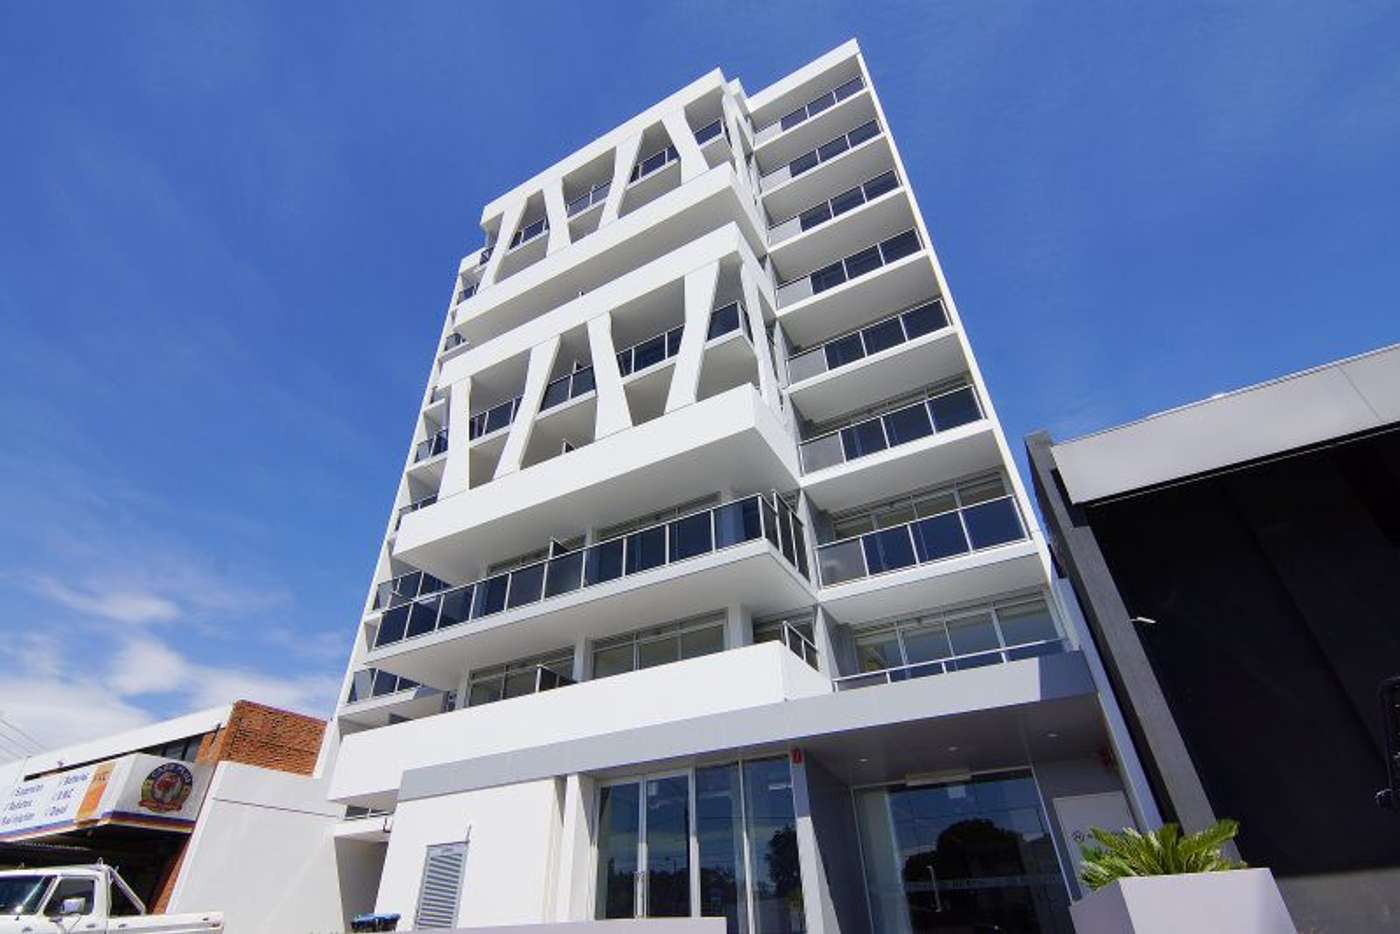 Main view of Homely apartment listing, 102/33 Racecourse Road, North Melbourne VIC 3051